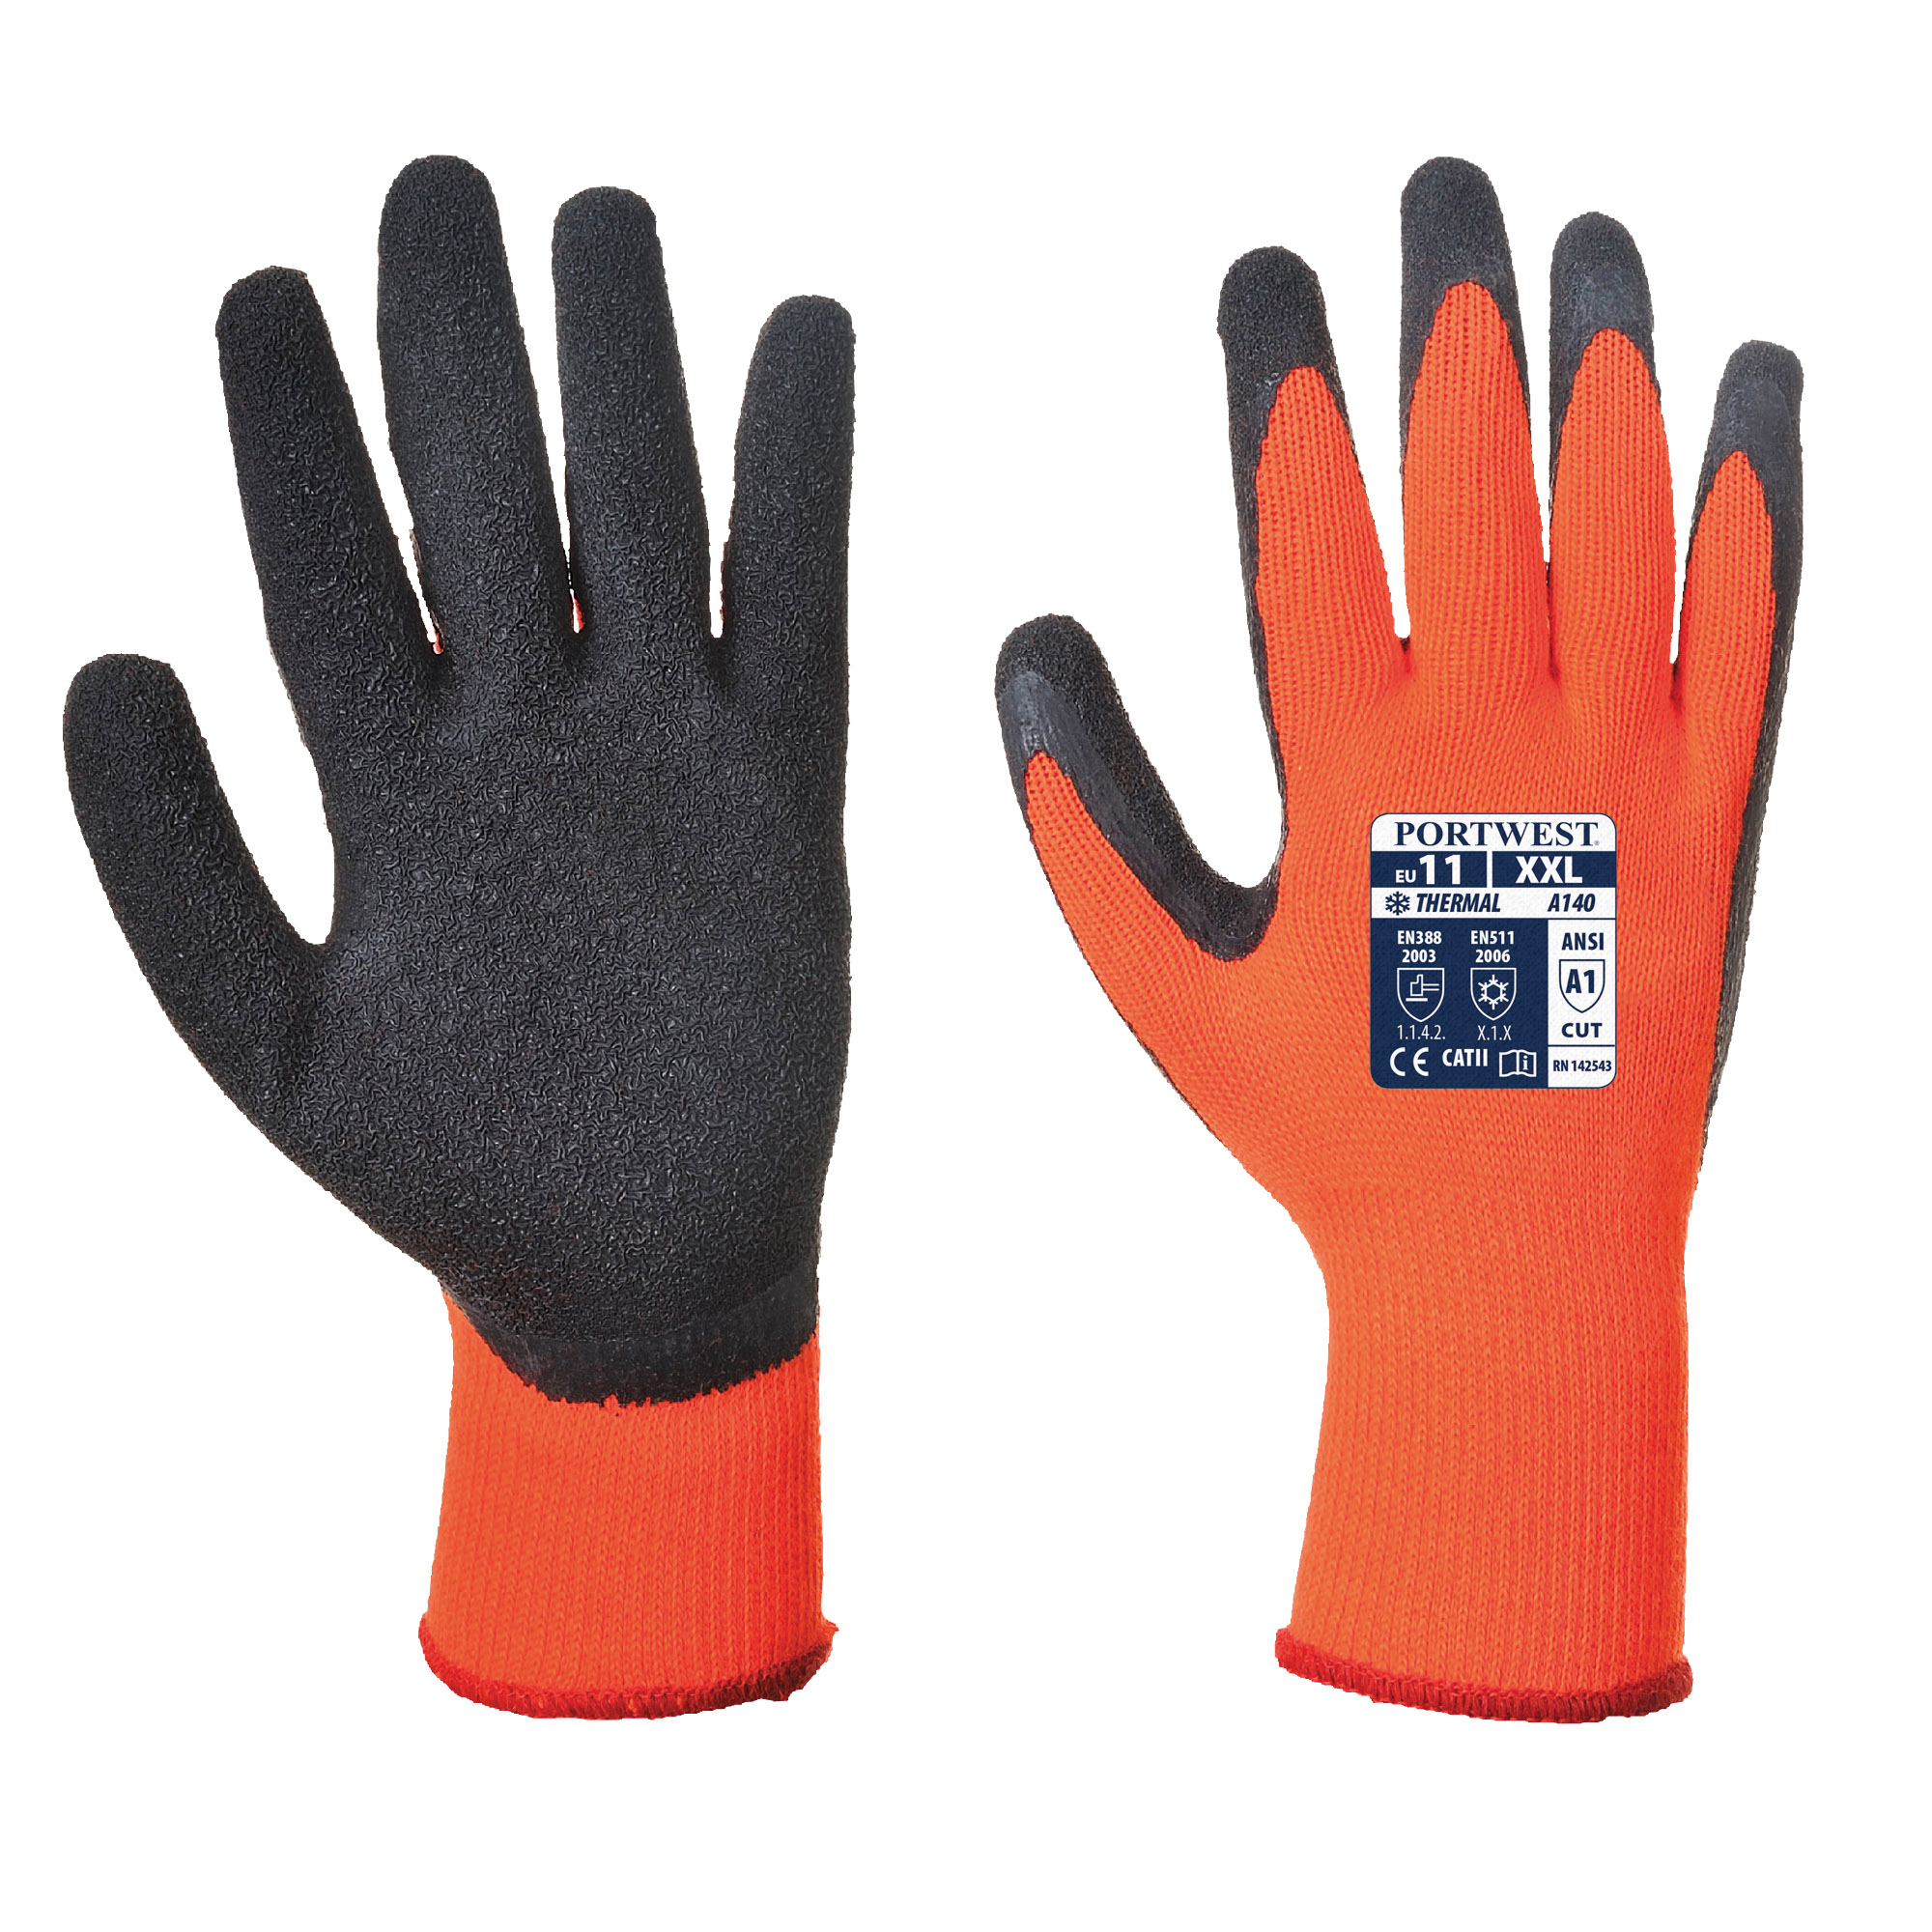 Portwest A140 Thermal Grip Glove Iwantworkwear